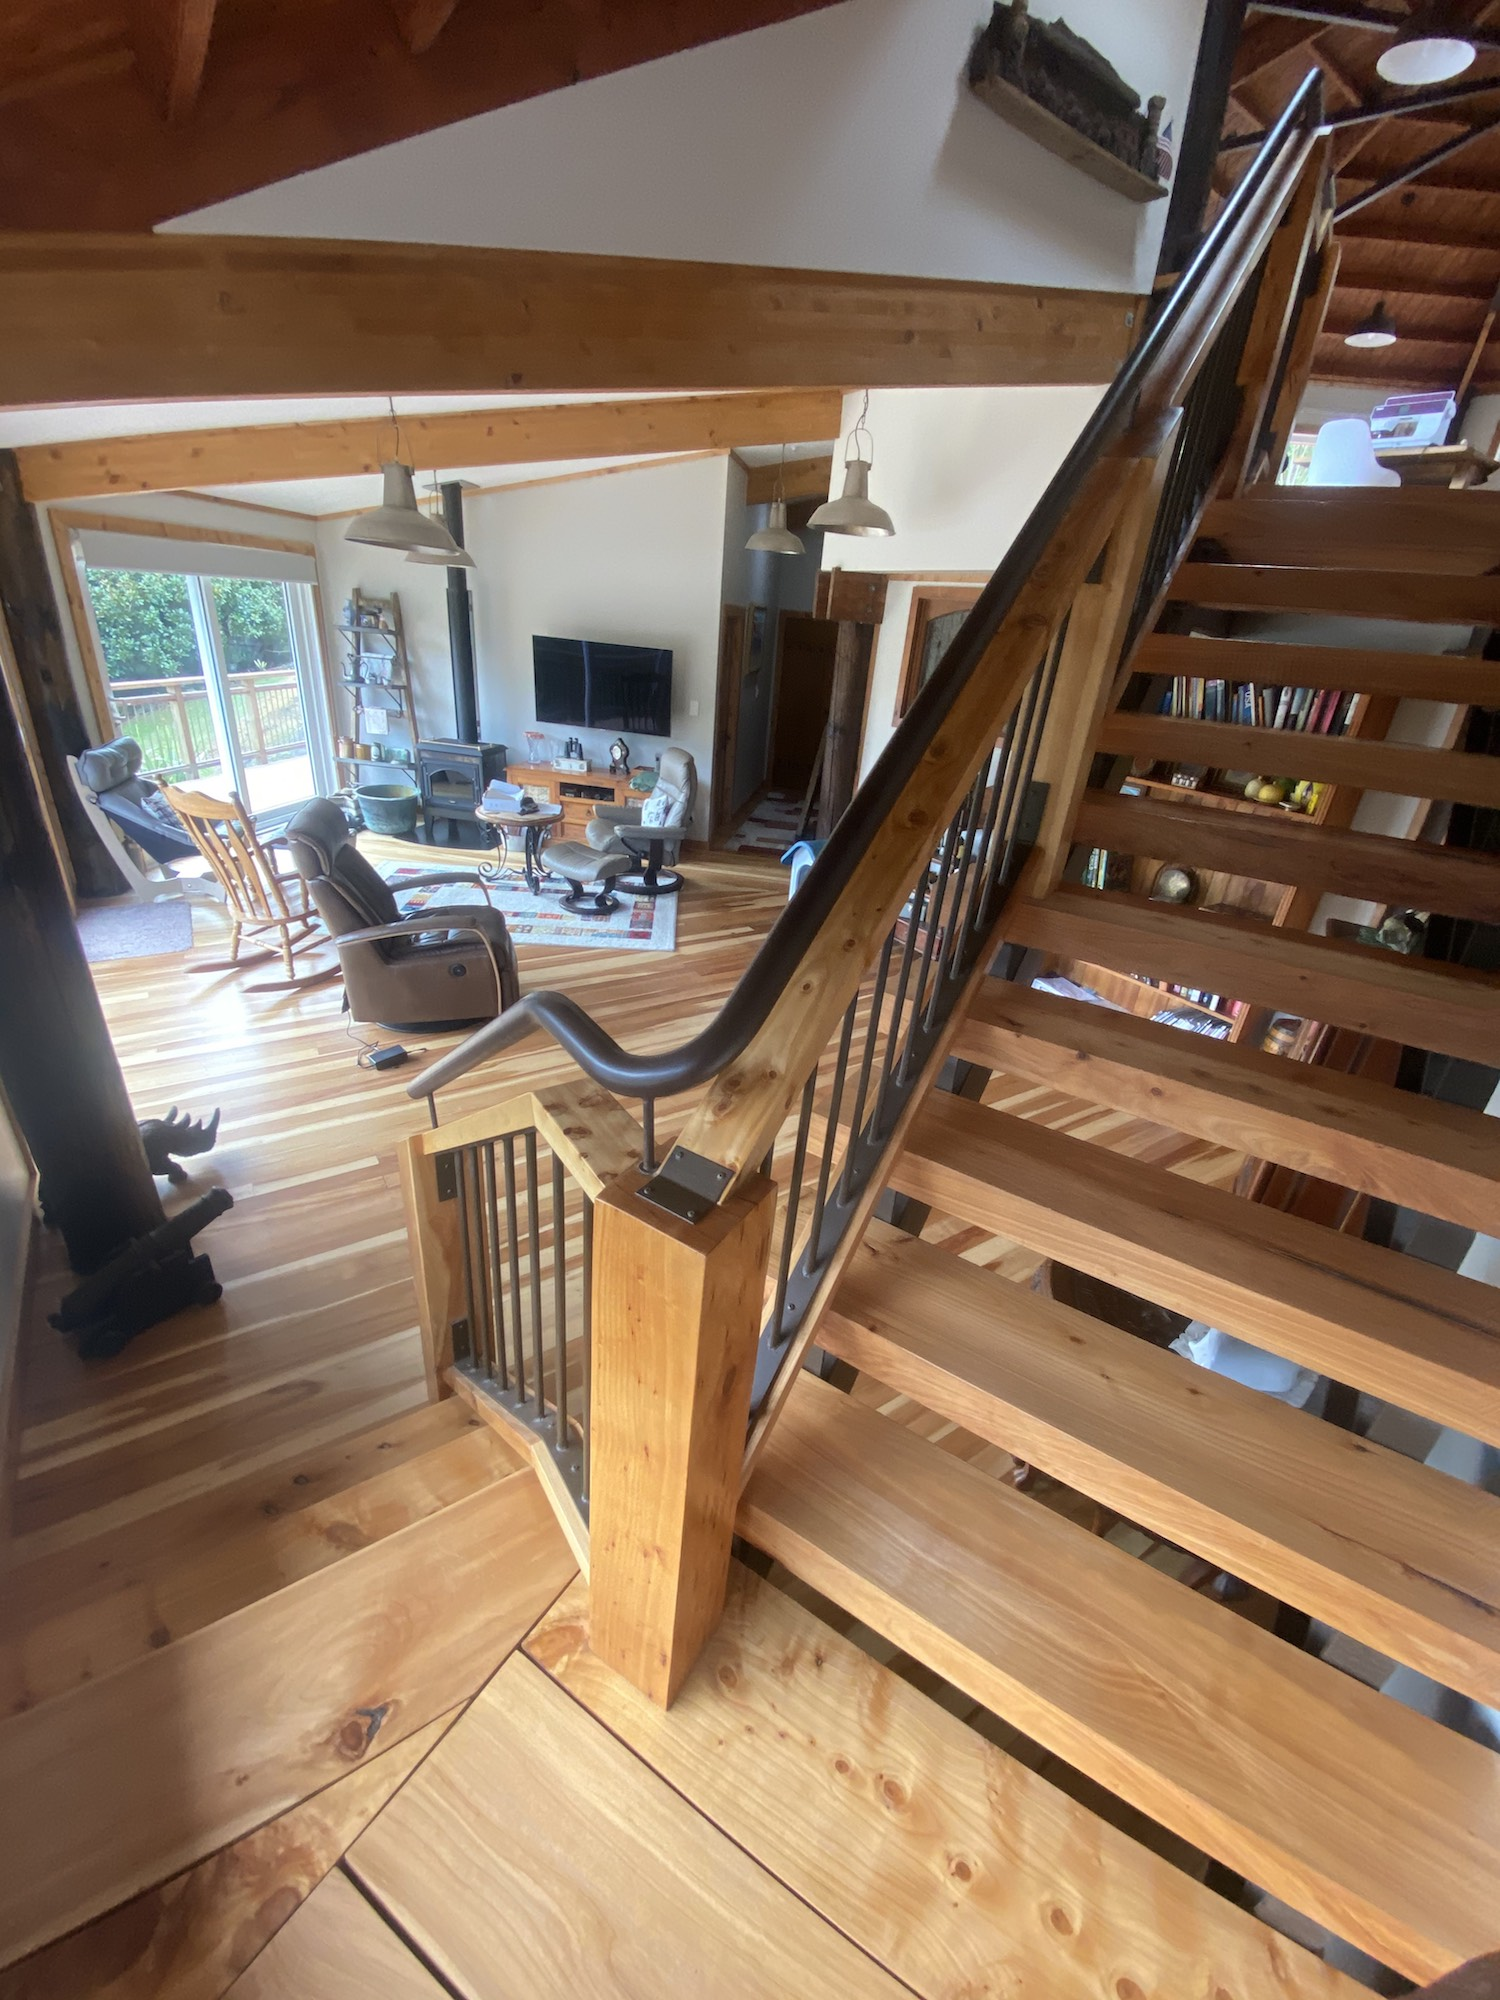 Metalwork and craftsmanship used for steel handrail on rustic staircase in Auckland